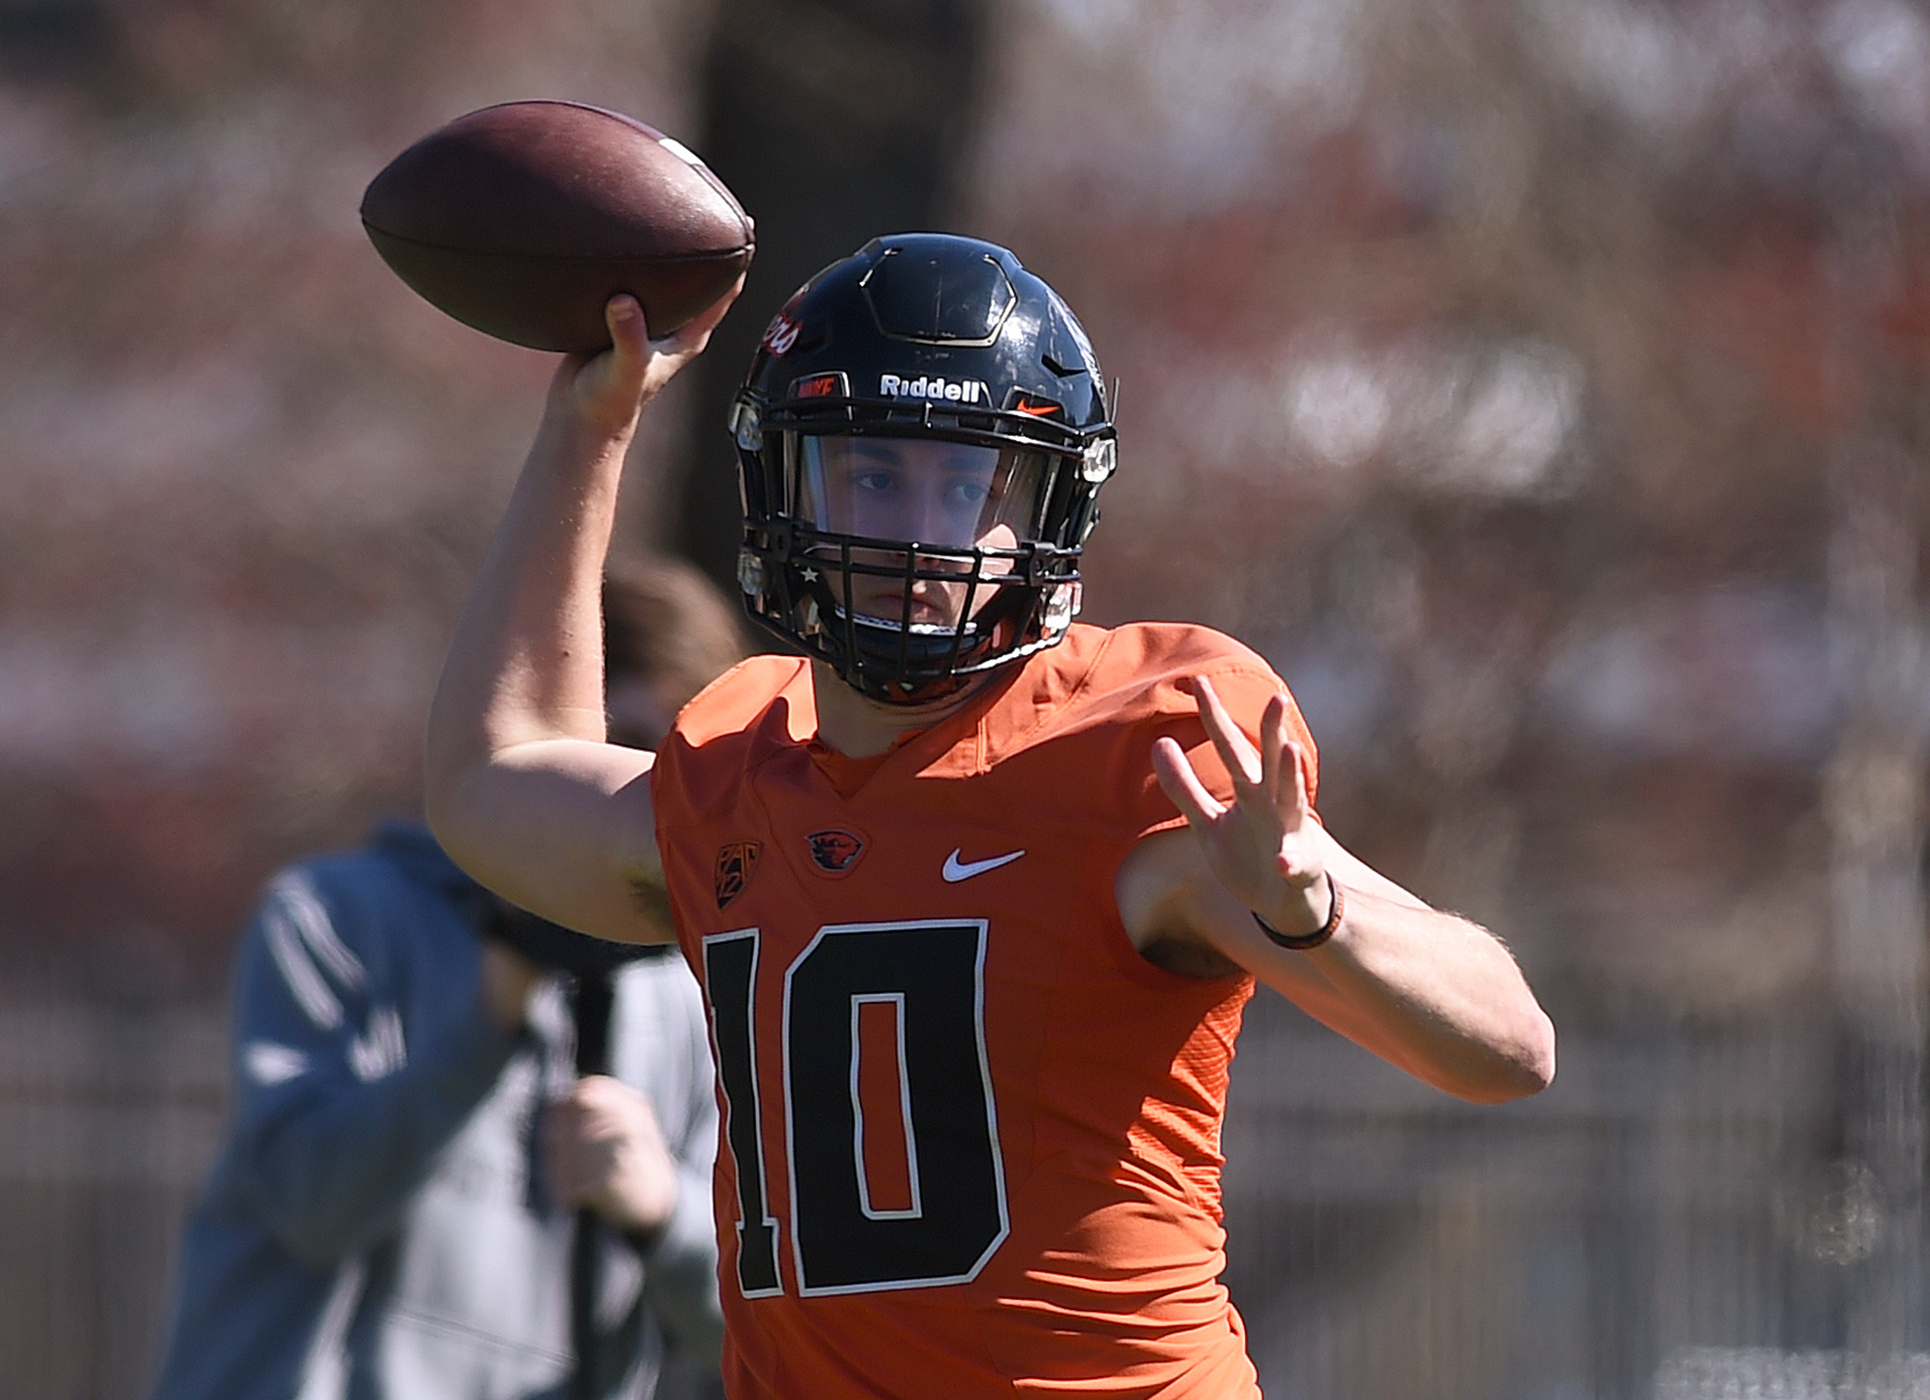 FILE - In this March 29, 2016 file photo, Oregon State Beavers quarterback Darell Garretson (10) throws a pass during spring NCAA college football practice in Corvallis, Ore. Oregon State quarterbacks Garretson, Marcus McMaryion and Mason moran were all o